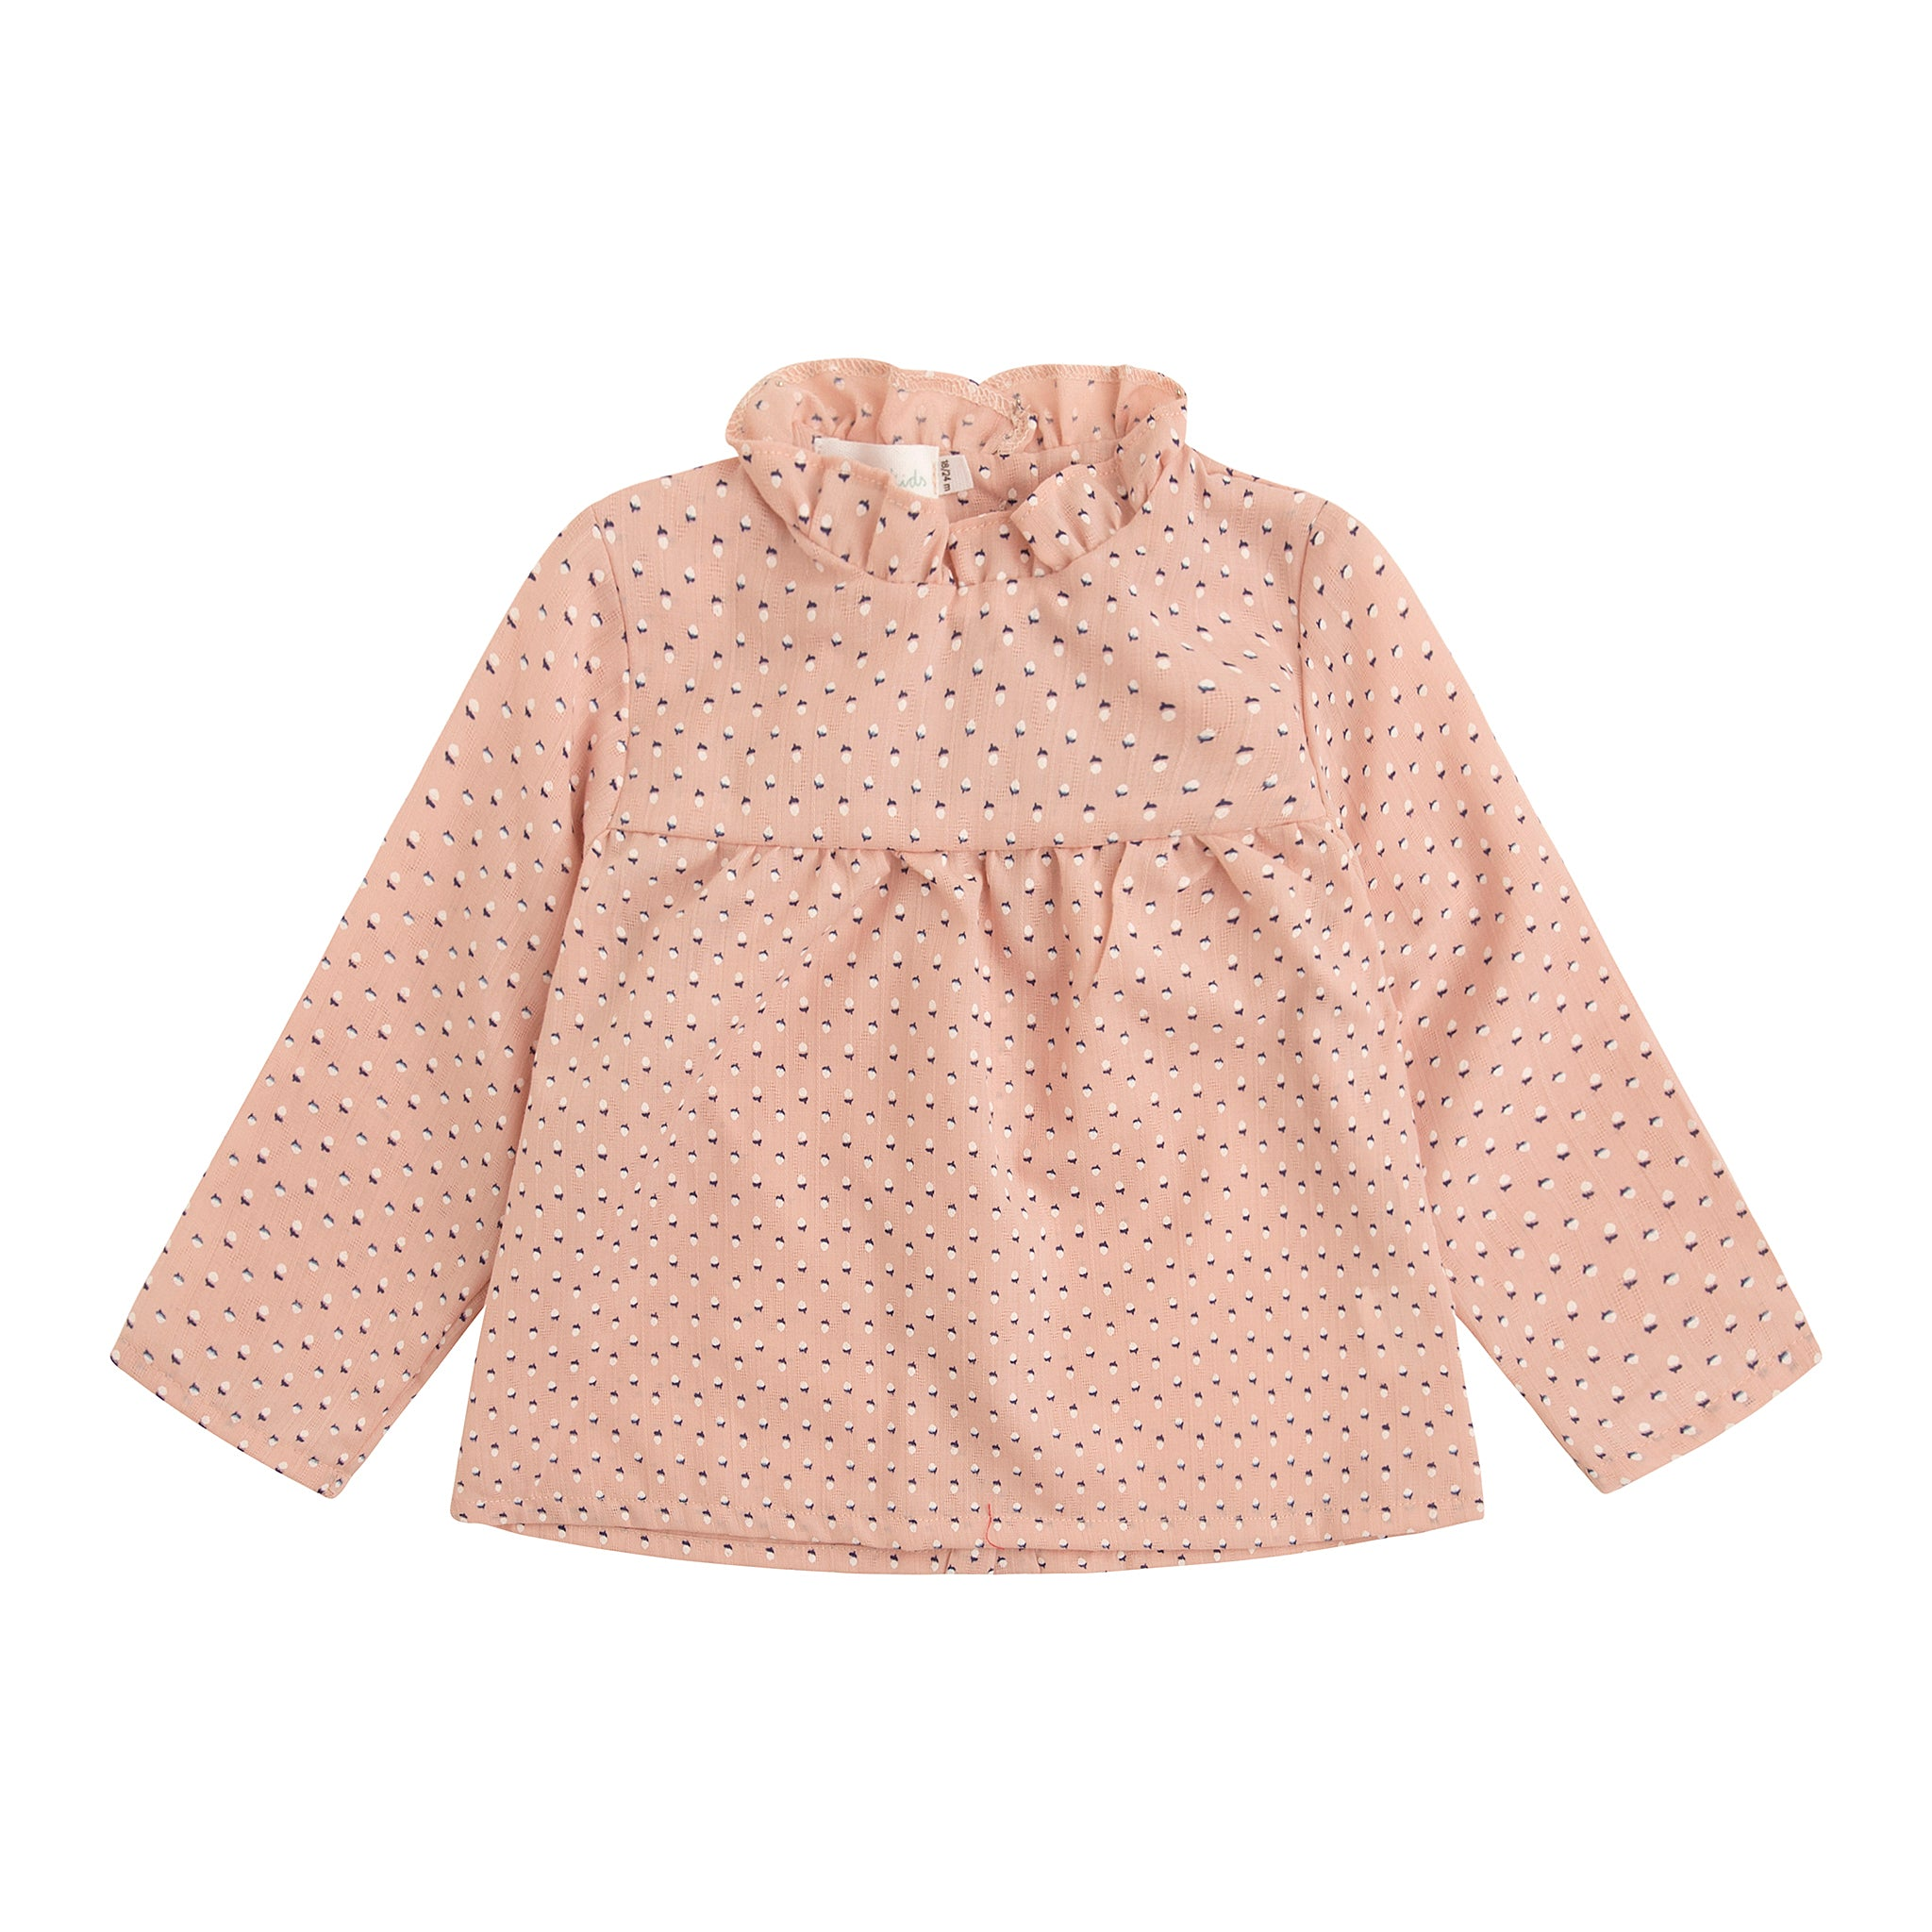 blush pink tiny scorn print girl's blouse with gathered collar